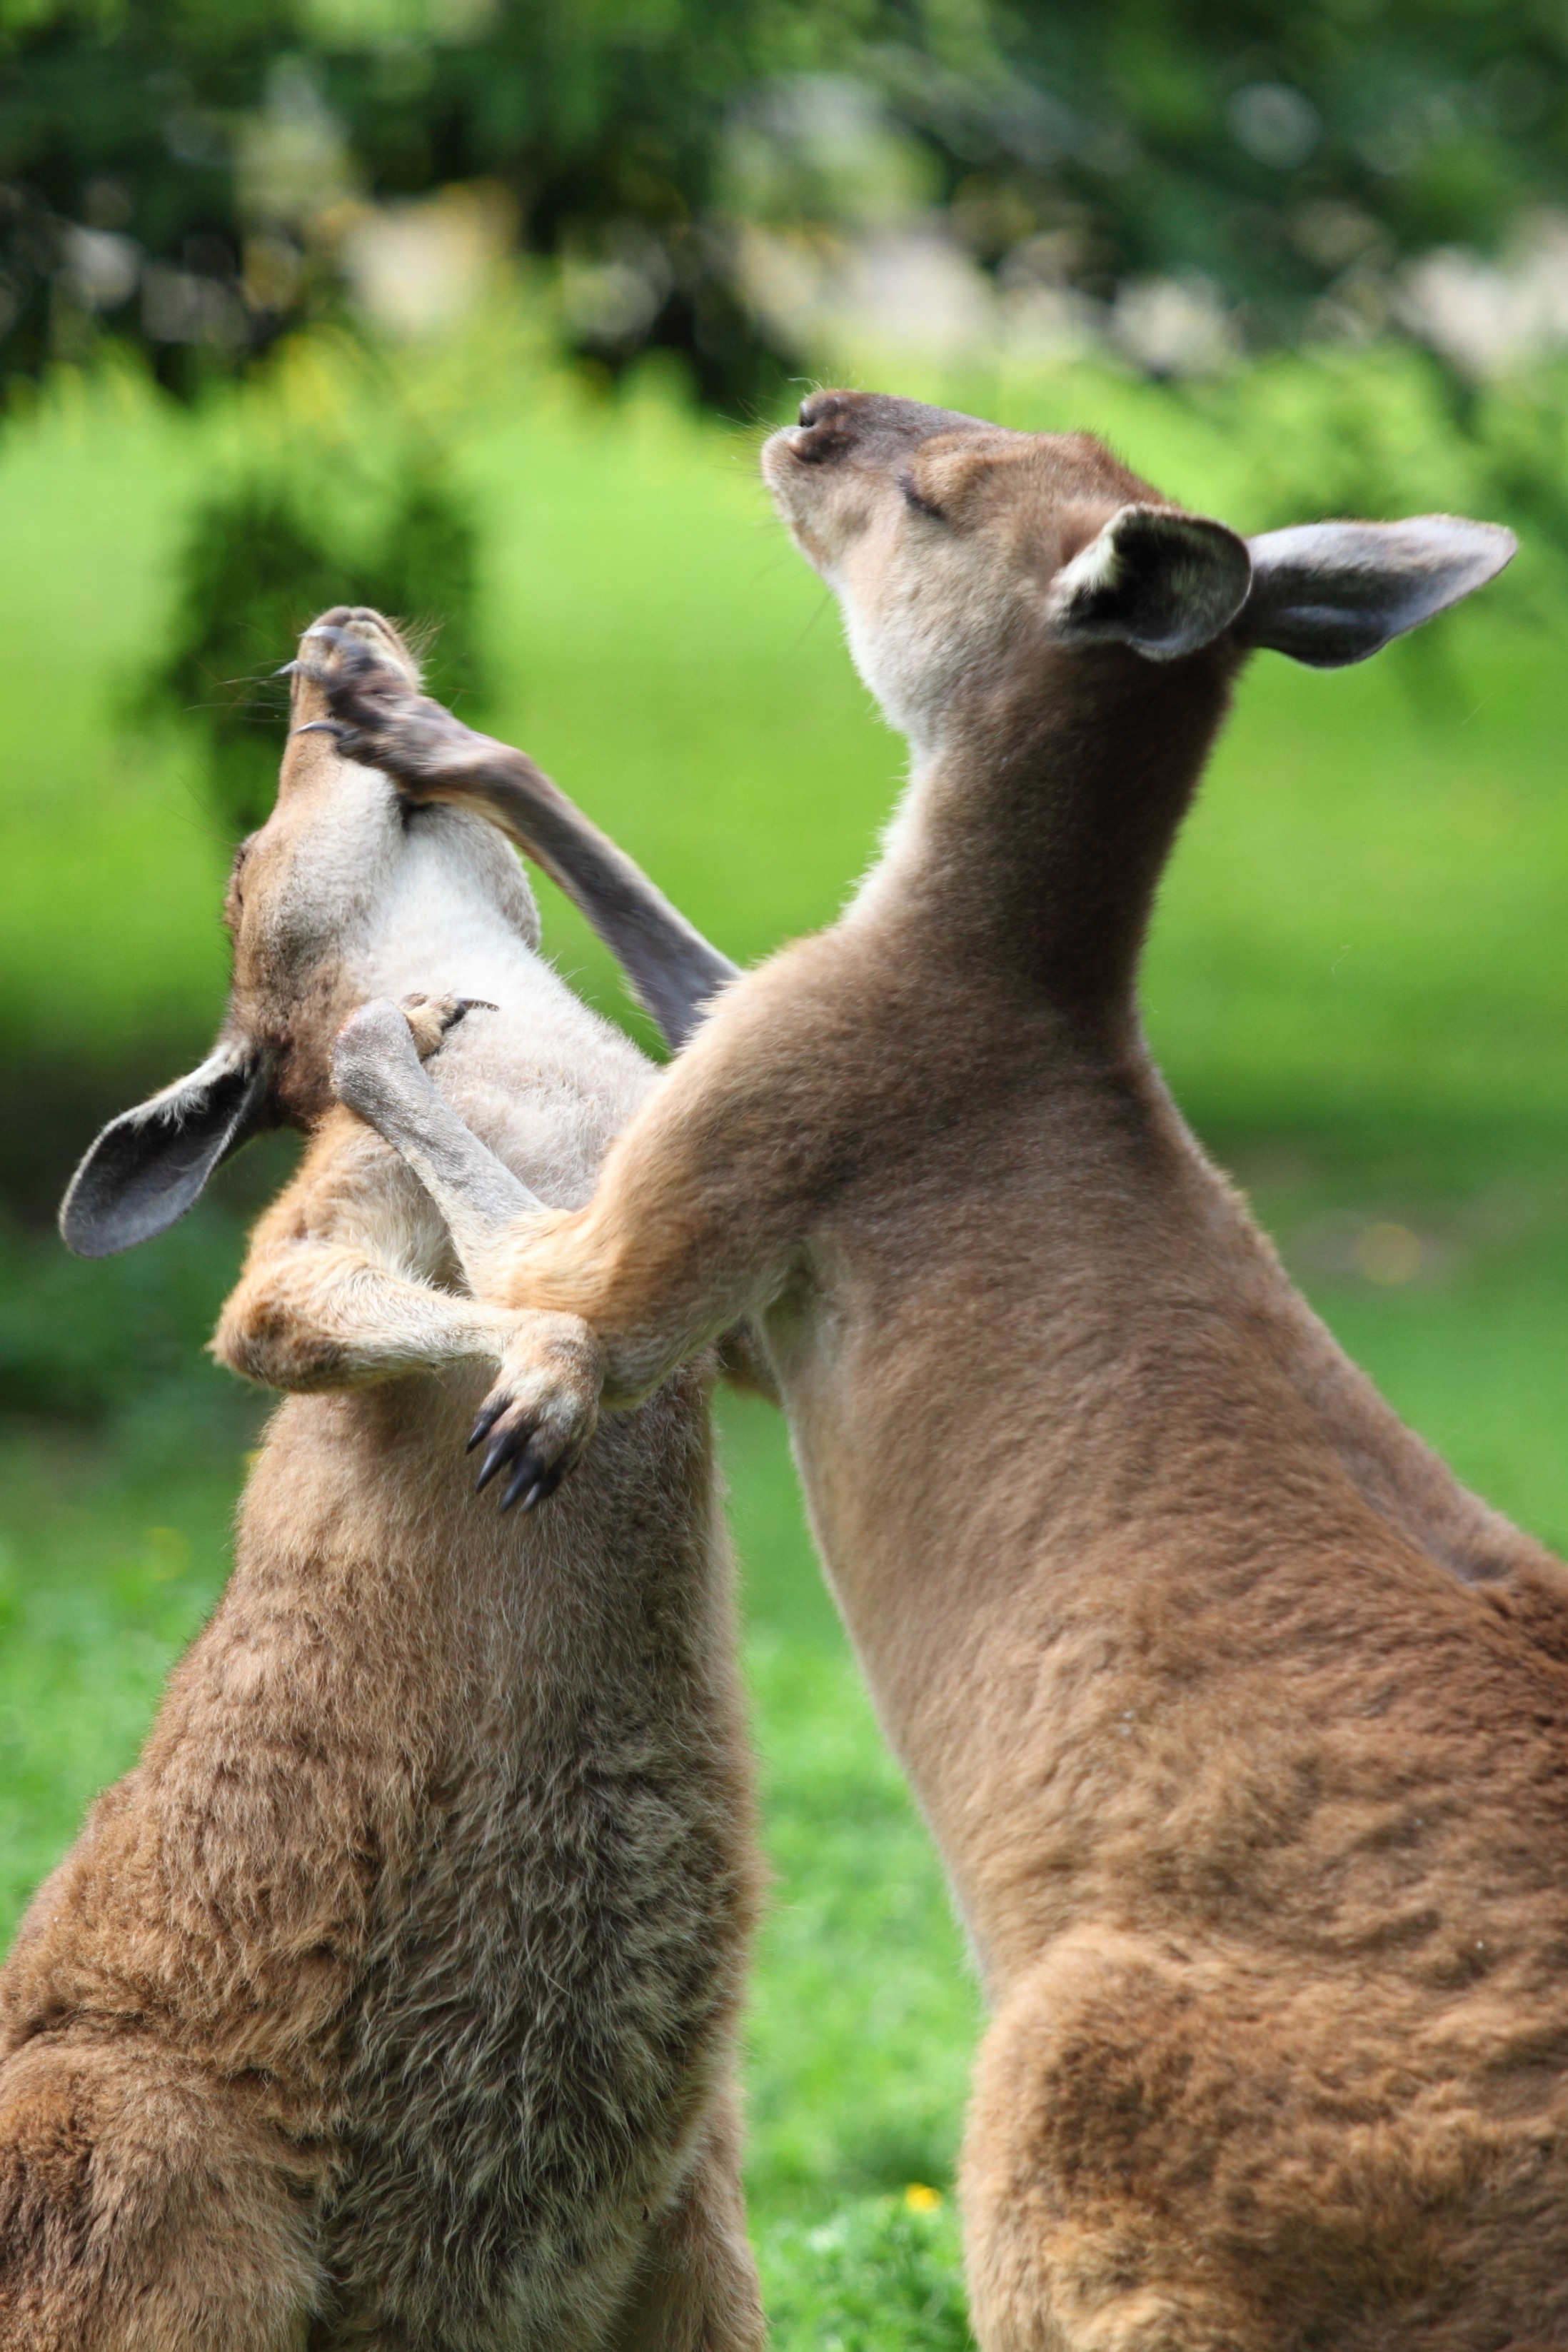 kangaroo_fight_189827